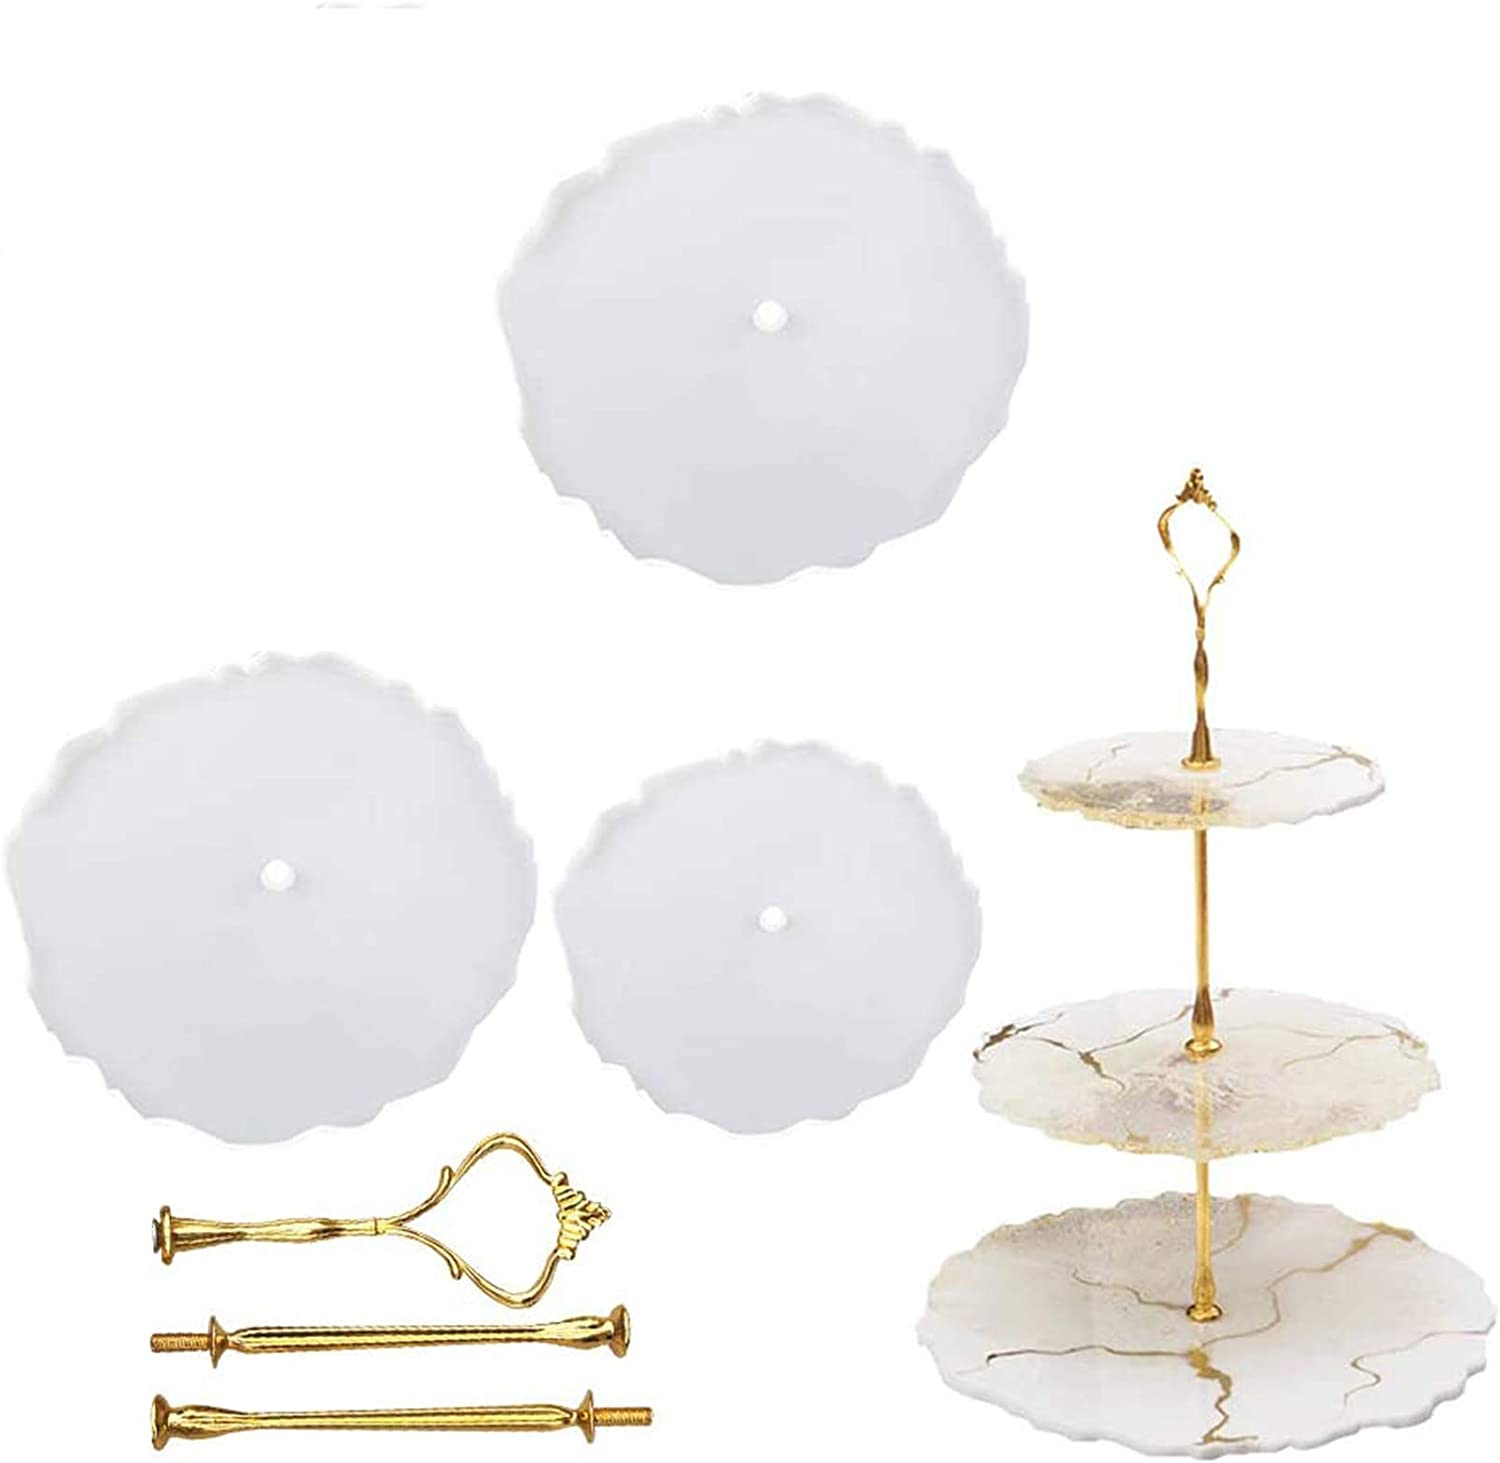 Round+Square 2 Pack 3 Tier Cake Stand Resin Tray Molds Epoxy Resin Casting Mold with 6Pcs Crown Brackets and 20 Gold Foils DIY Silicone Mold for Making Cupcake Dessert Platter Serving Stand